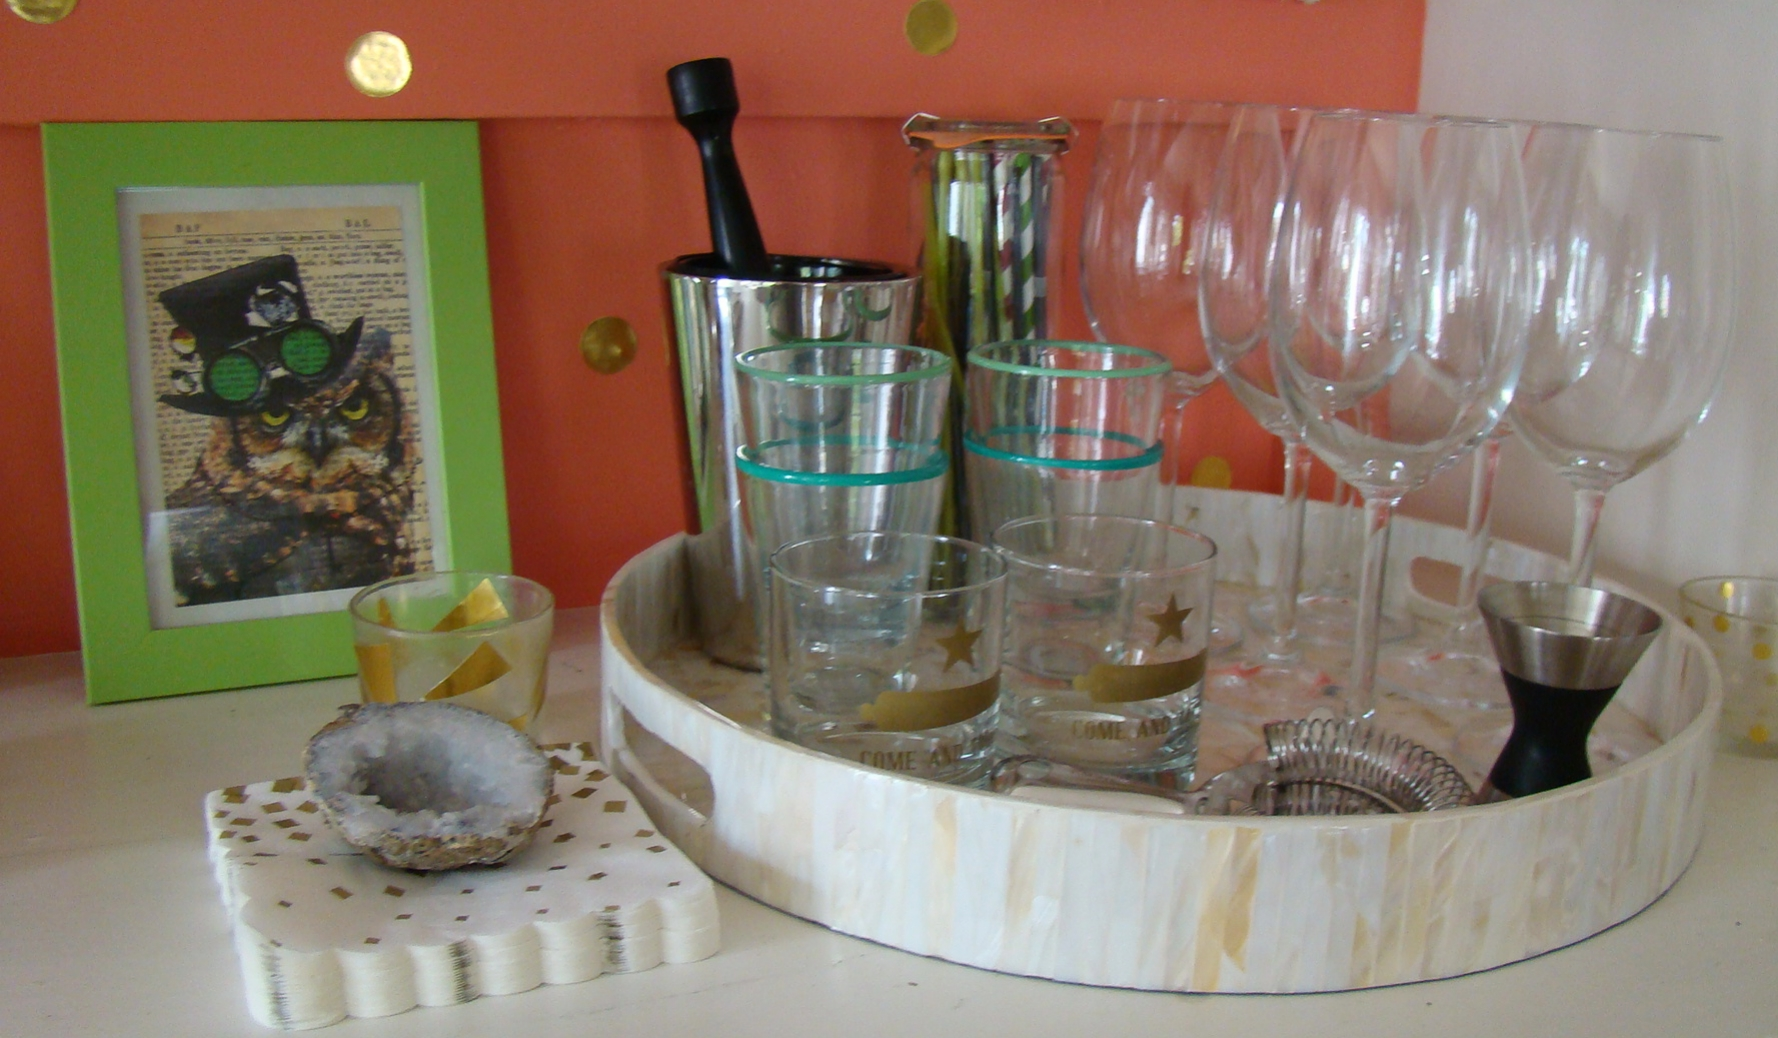 Get all your entertaining glasses and barware in one space, That way everything is within reach when folks want a drink.